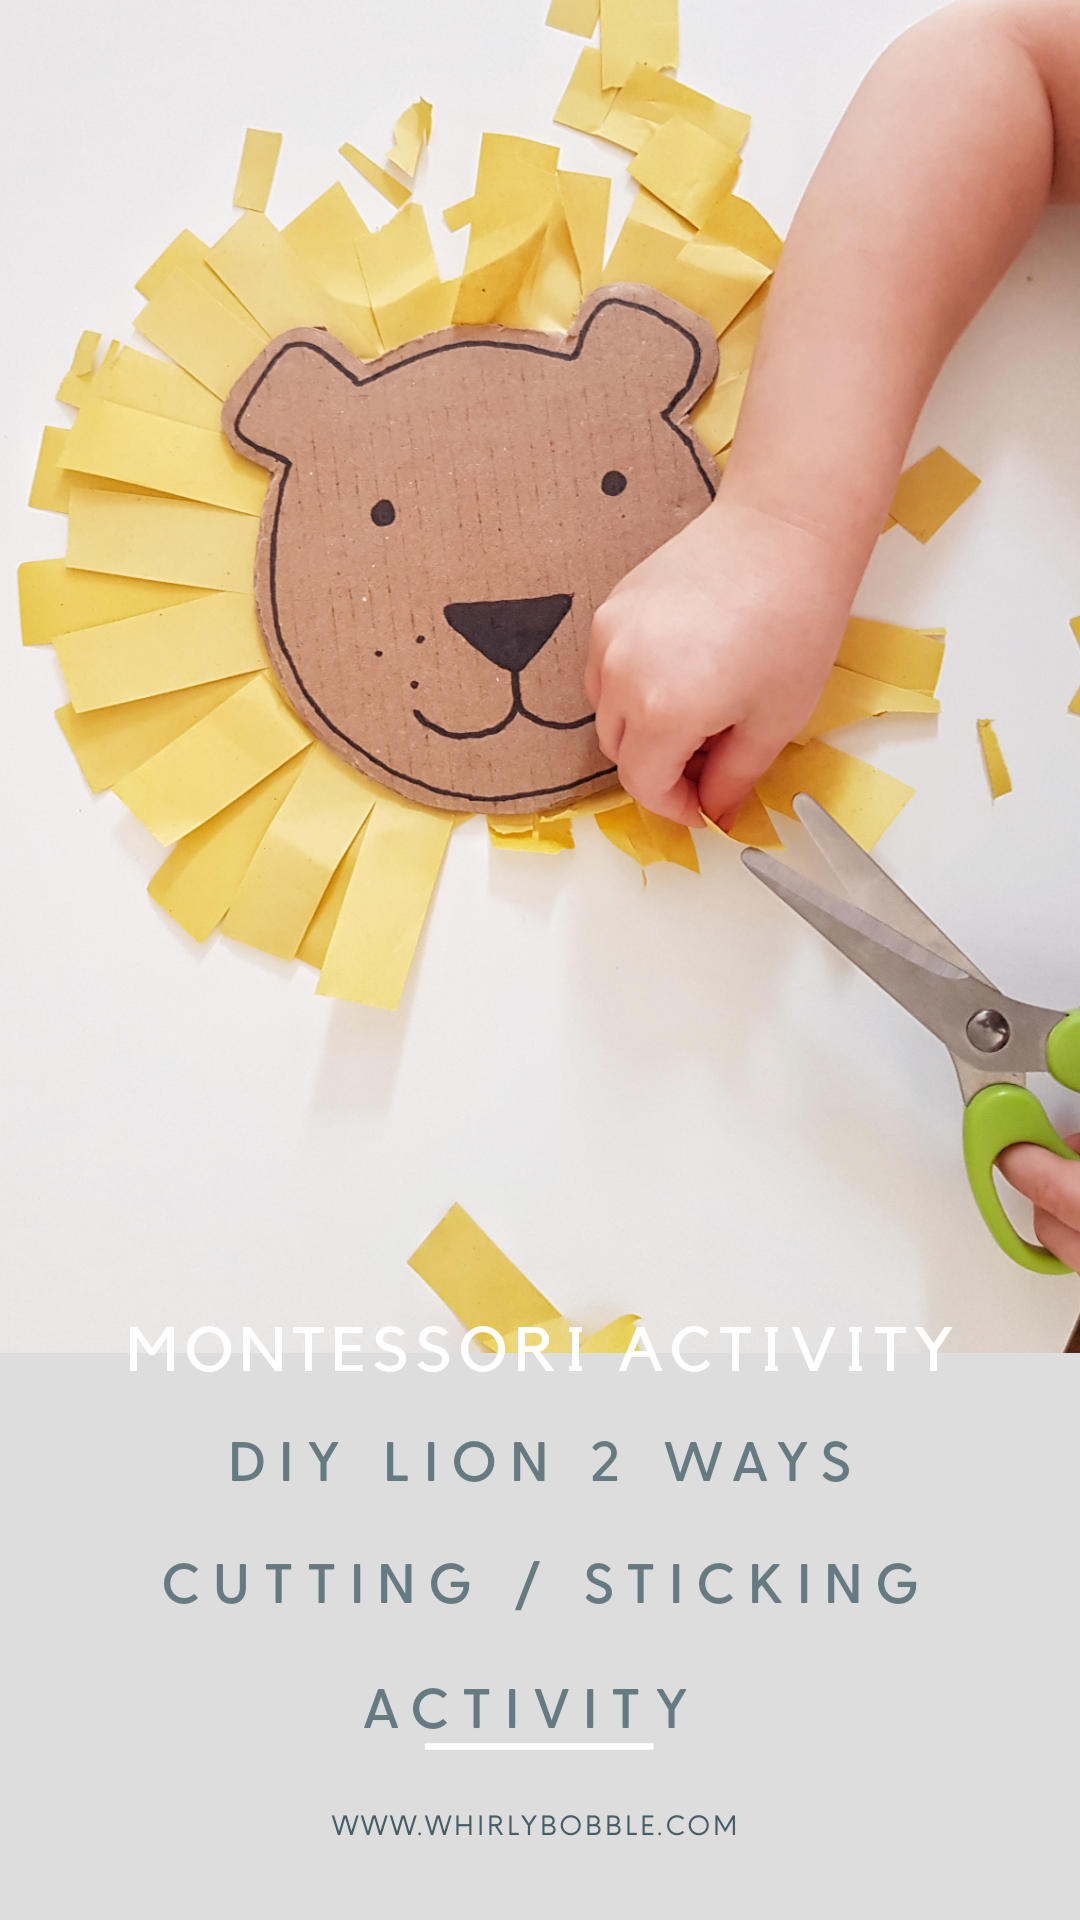 DIY lion face activity 2 ways